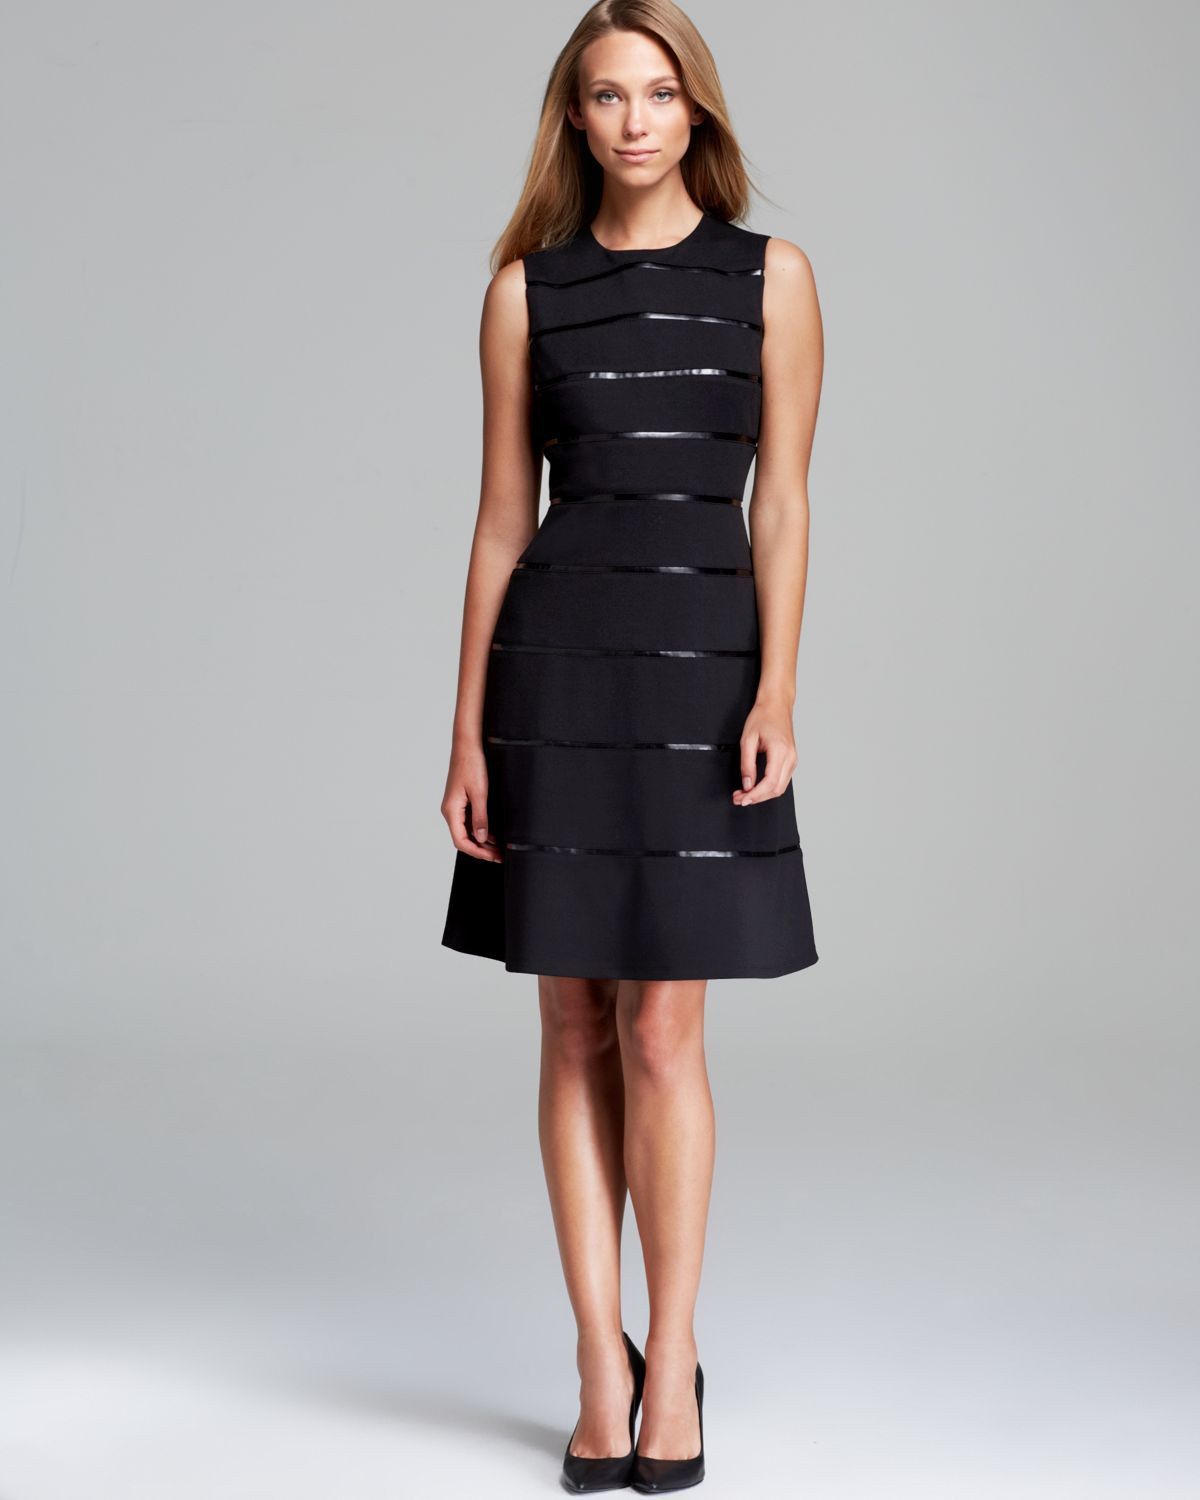 Calvin Klein Sleeveless Fit And Flare Dress In Black